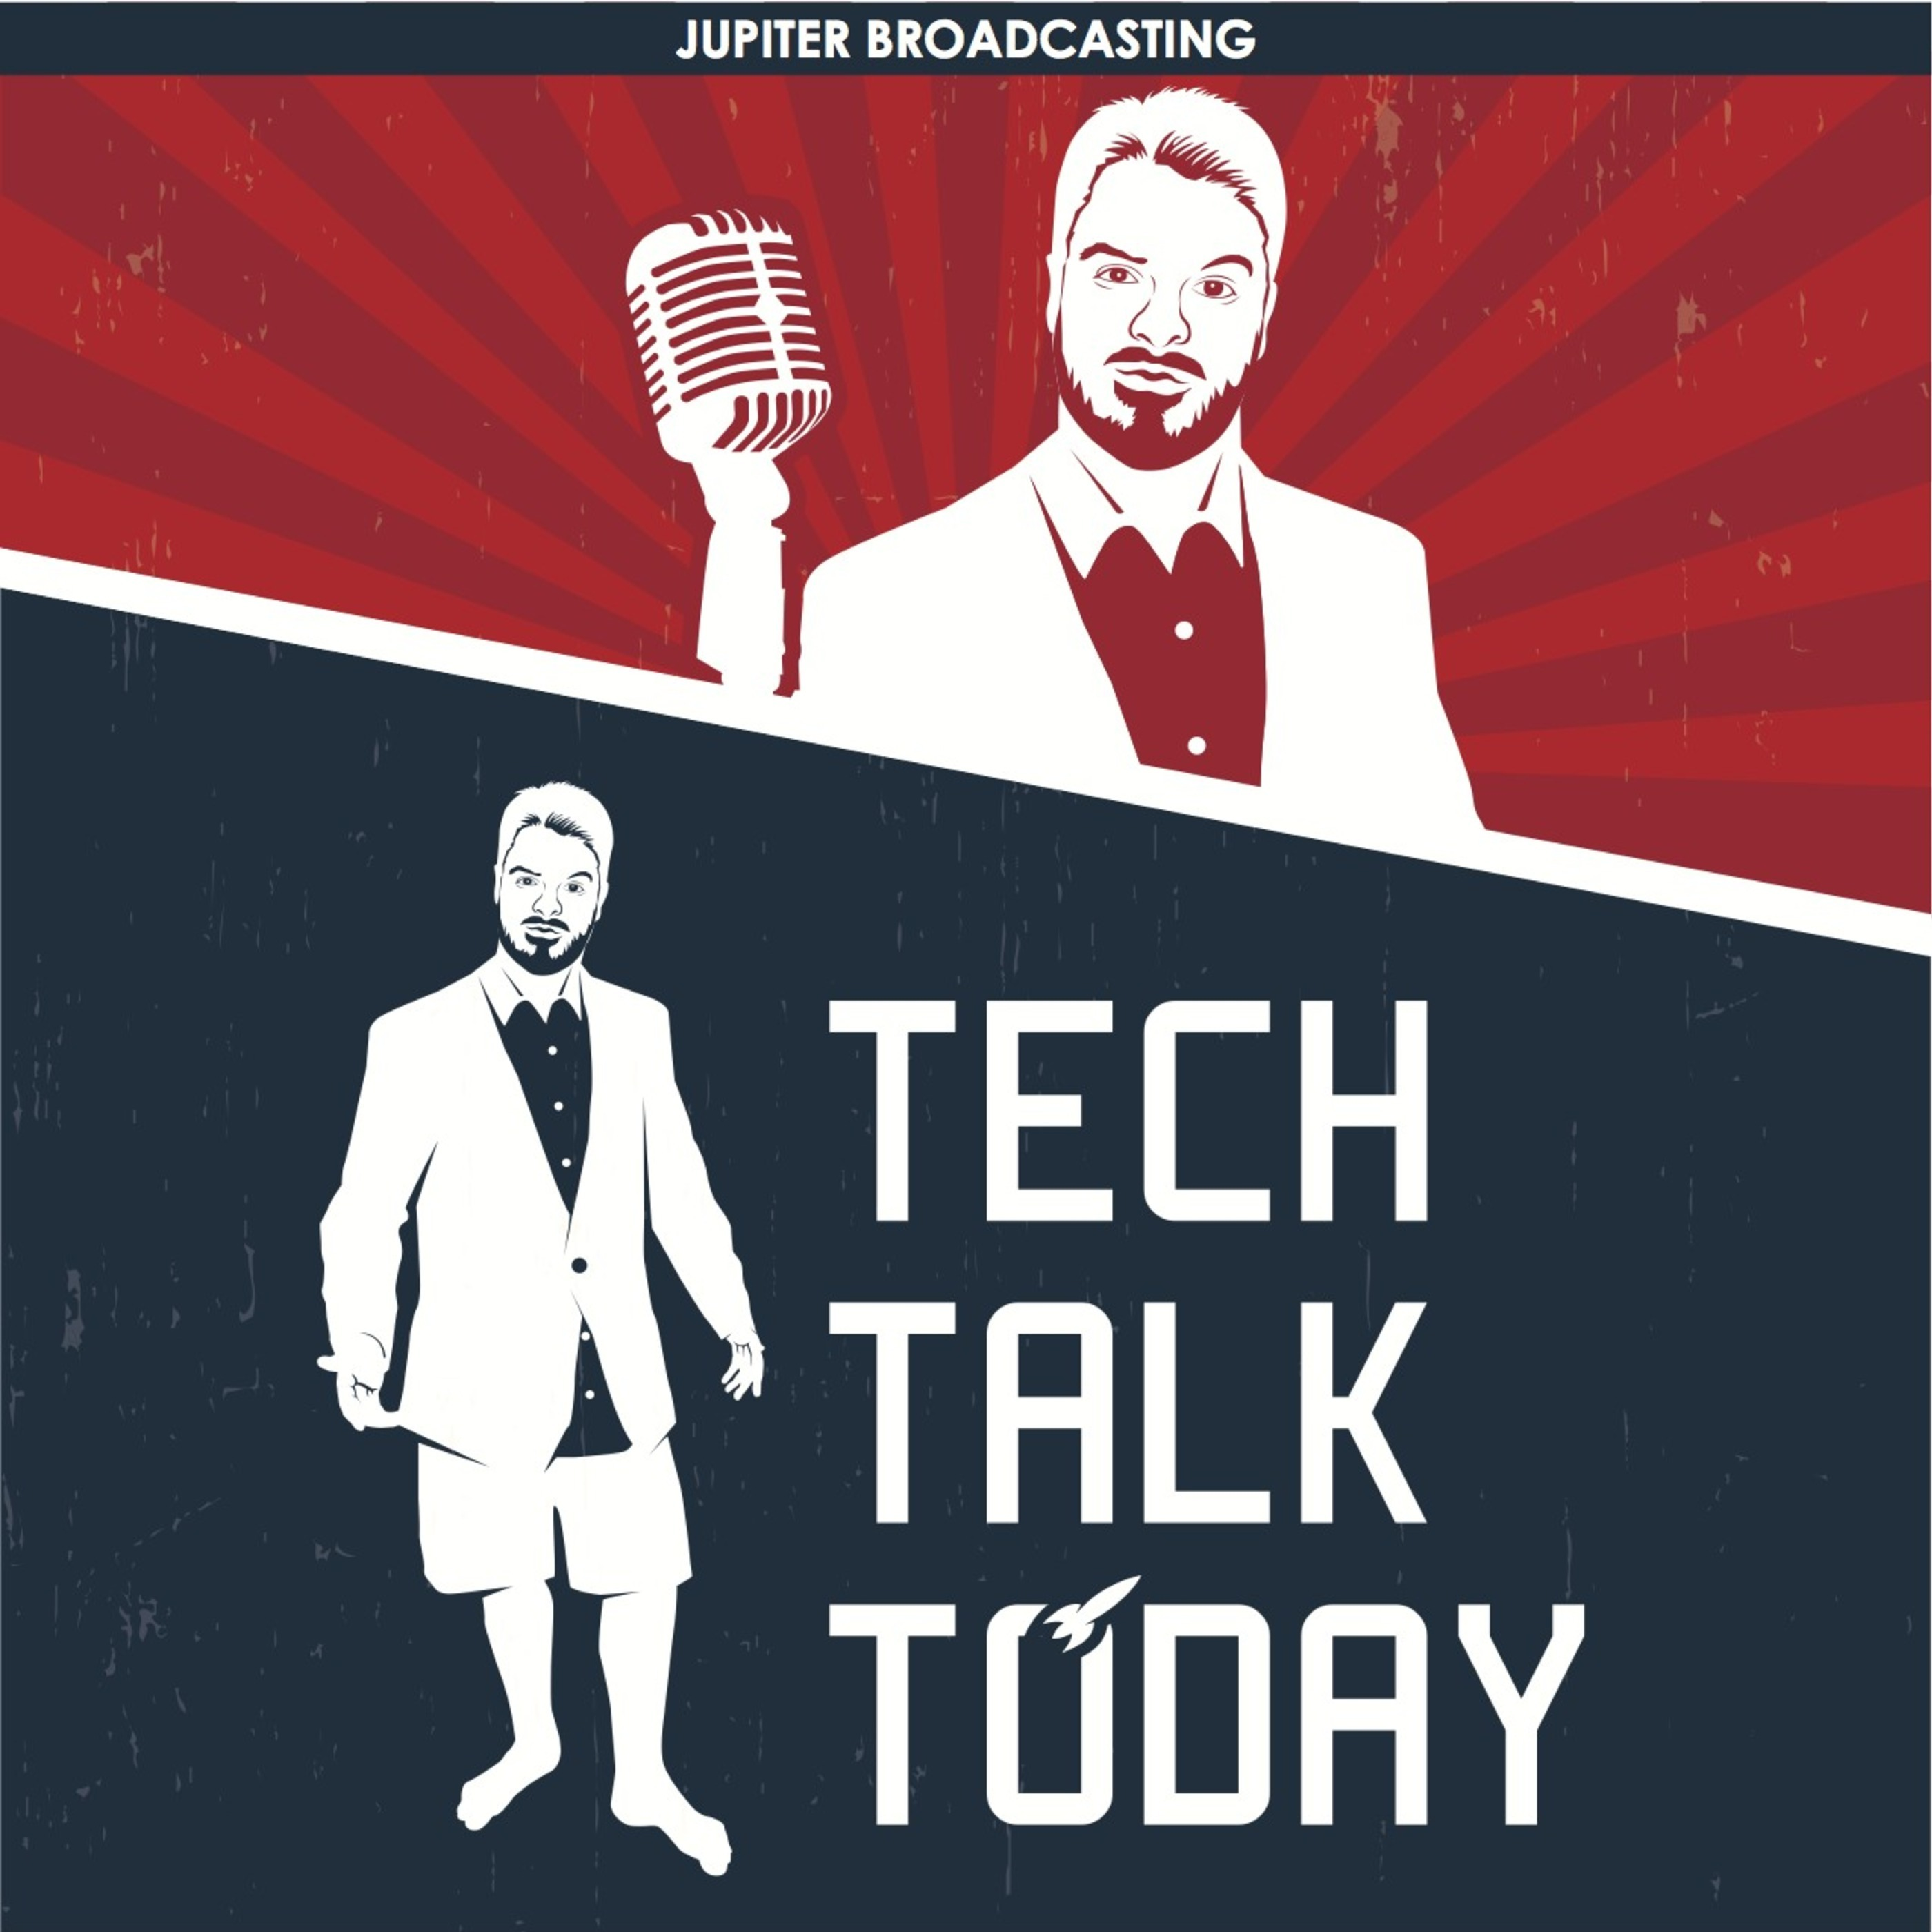 Episode 13: Hostile Music Takeover | Tech Talk Today 166